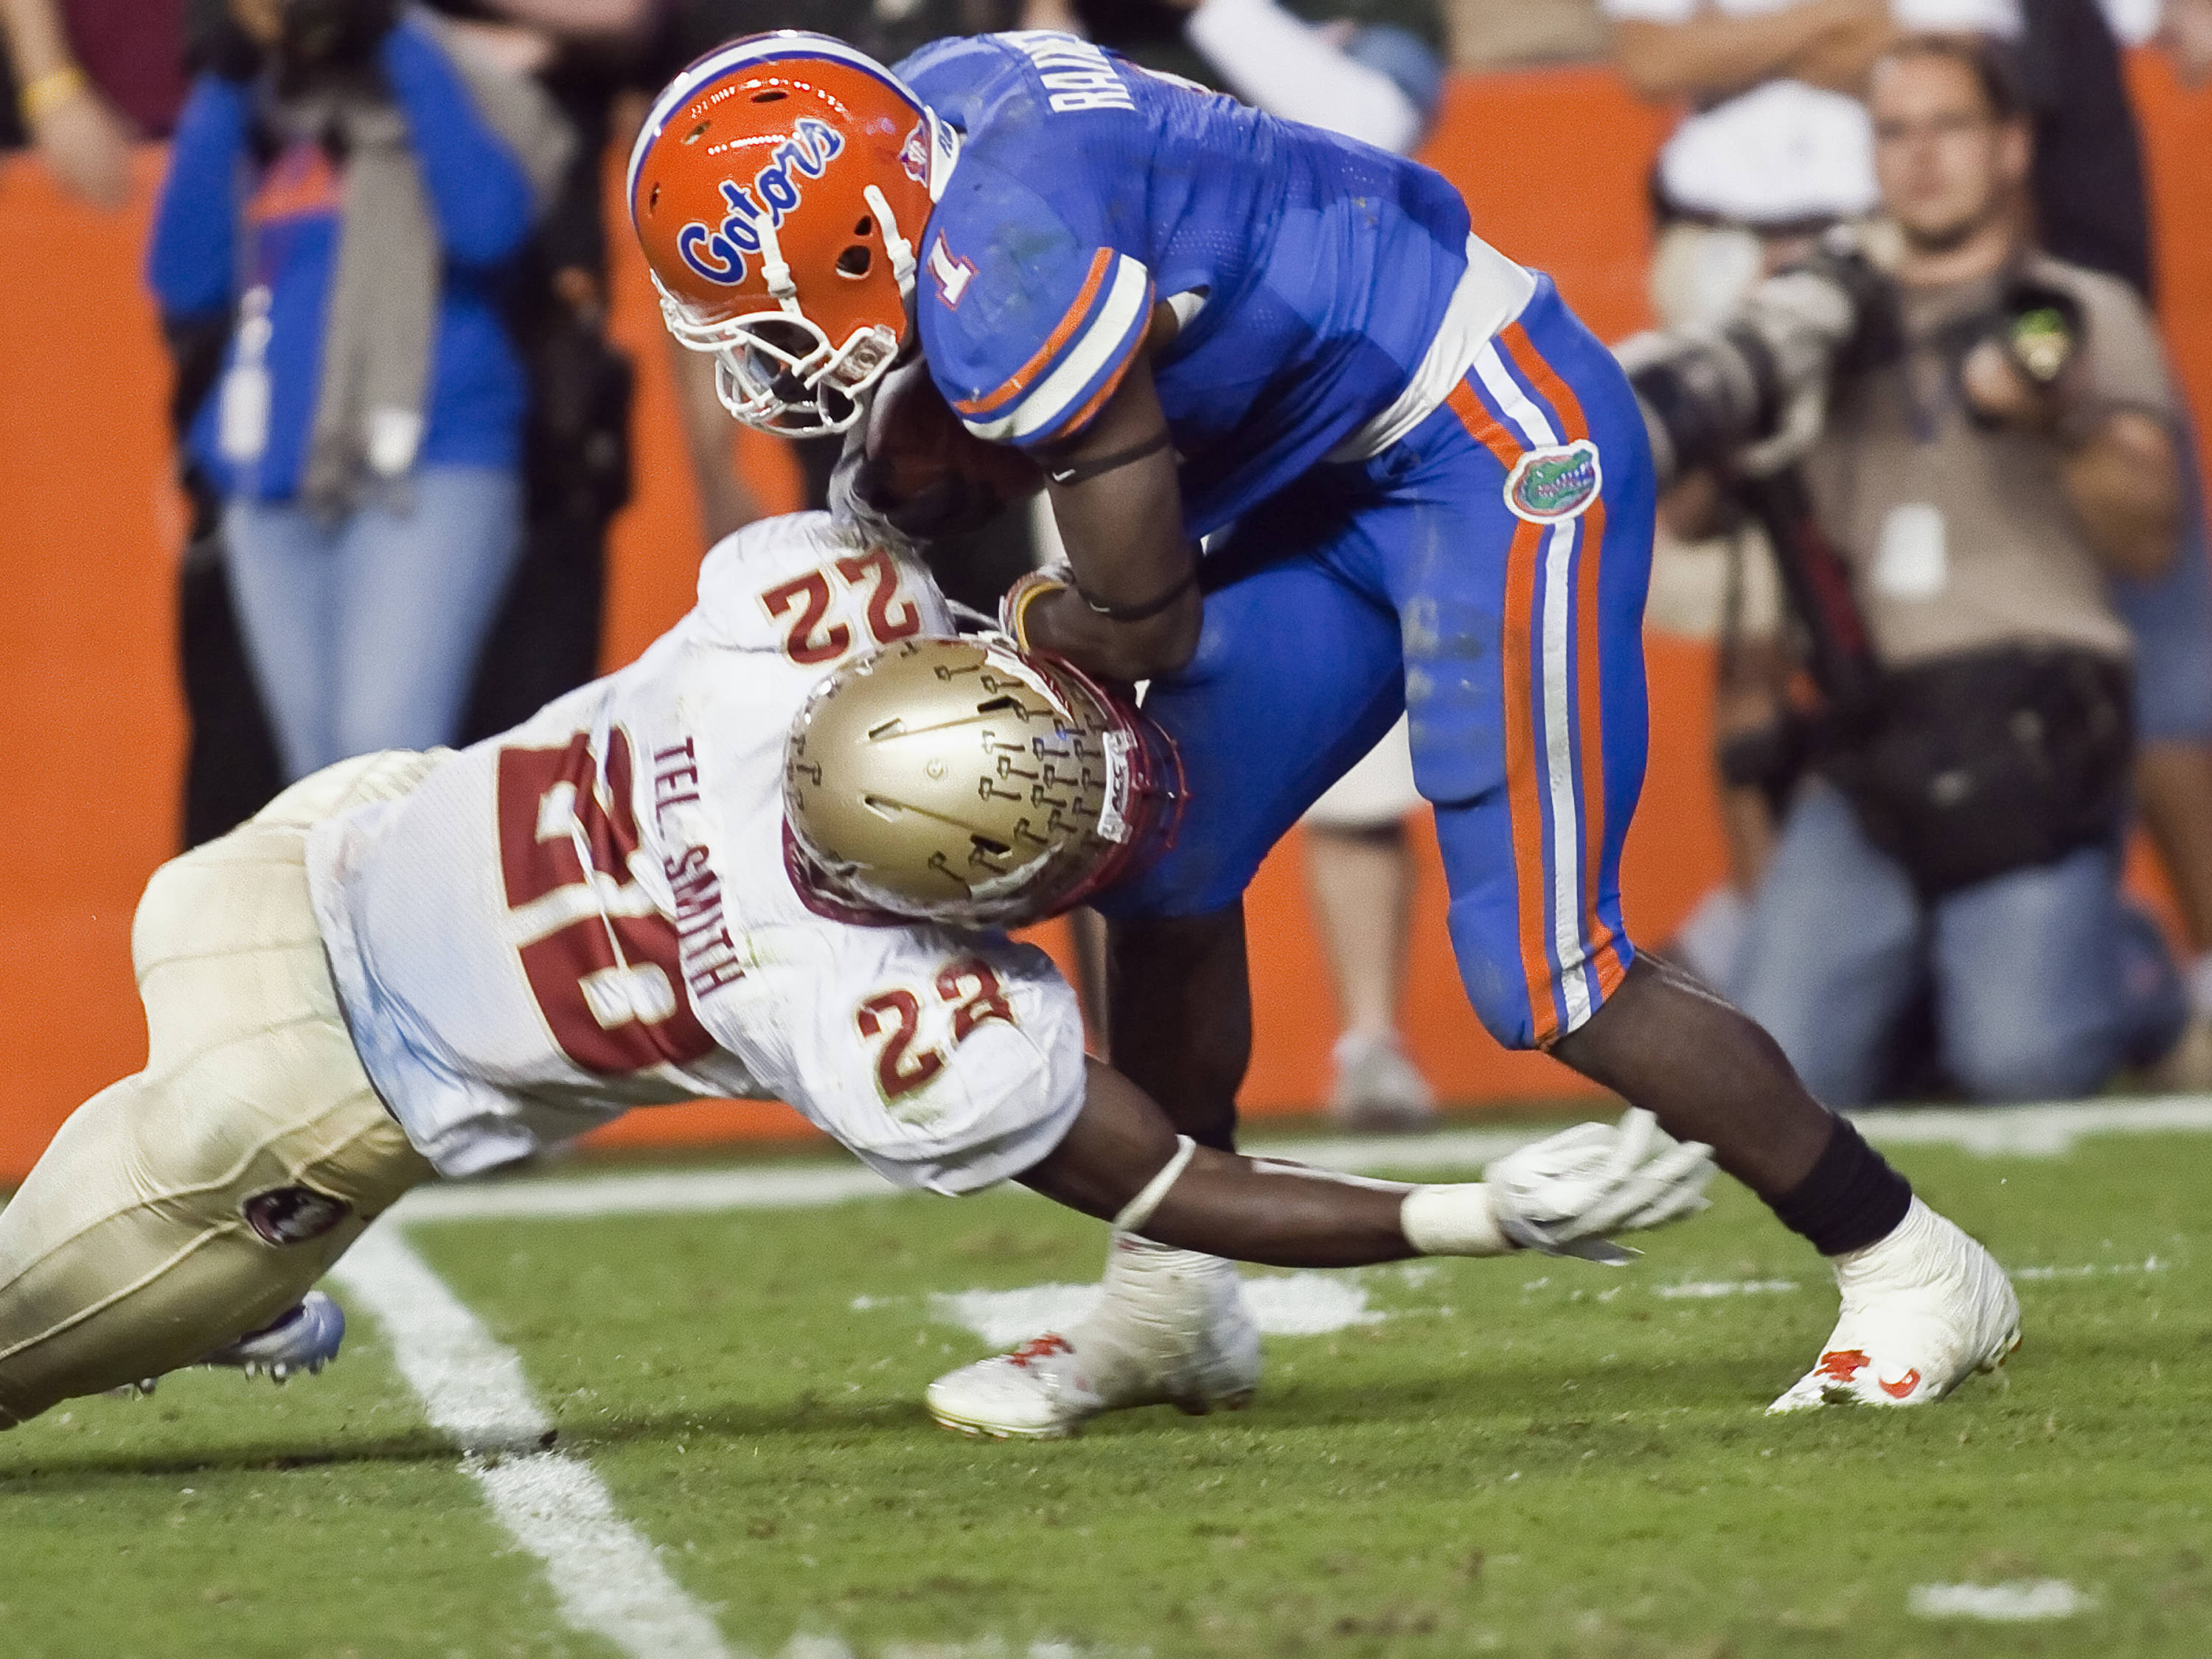 Telvin Smith (22) with a tackle for a loss, FSU vs Florida, 11/26/2011